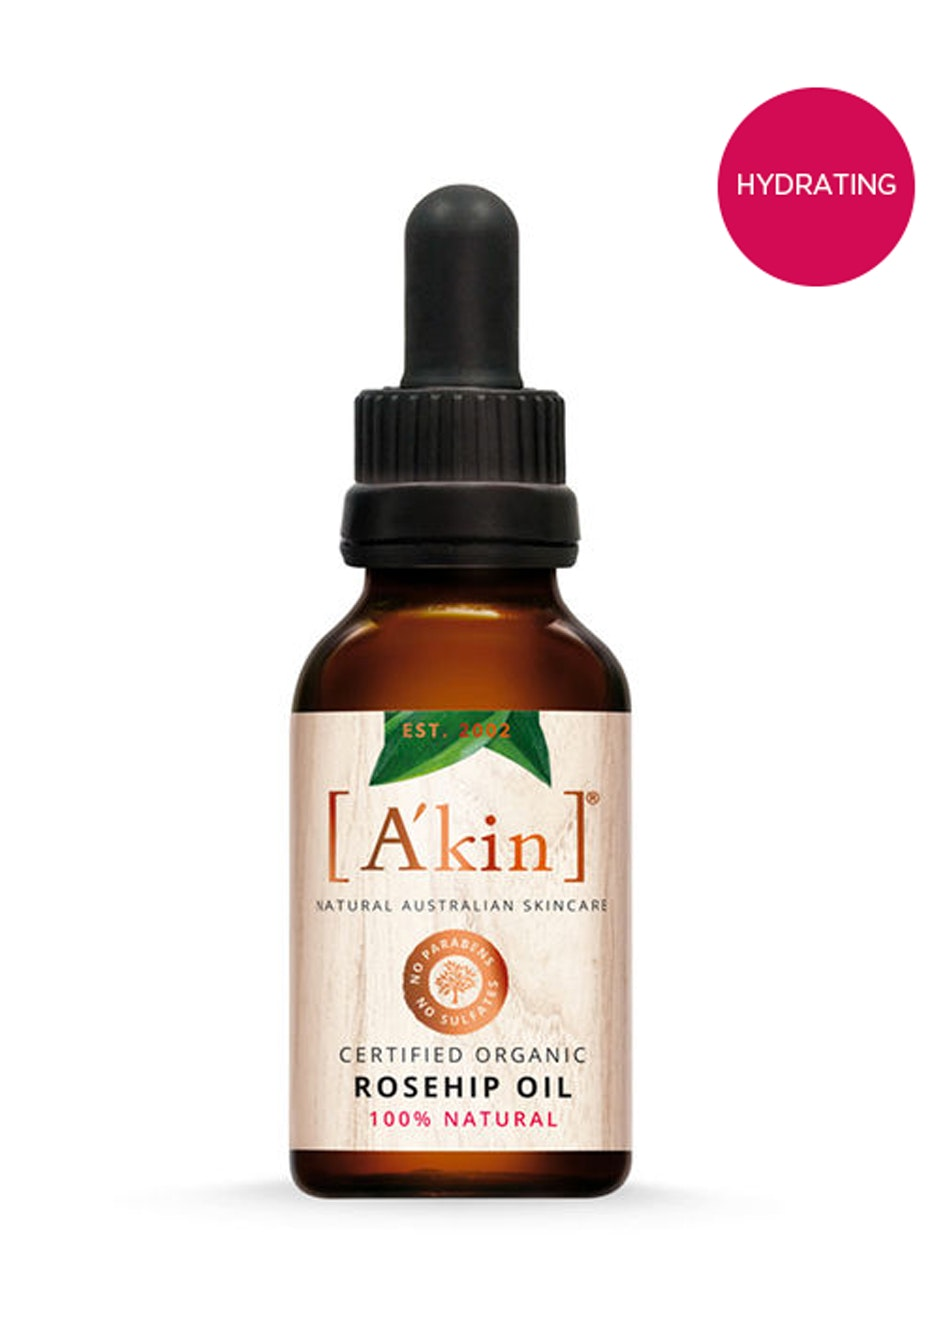 A'kin  - Certified Organic Rosehip Oil 20ml